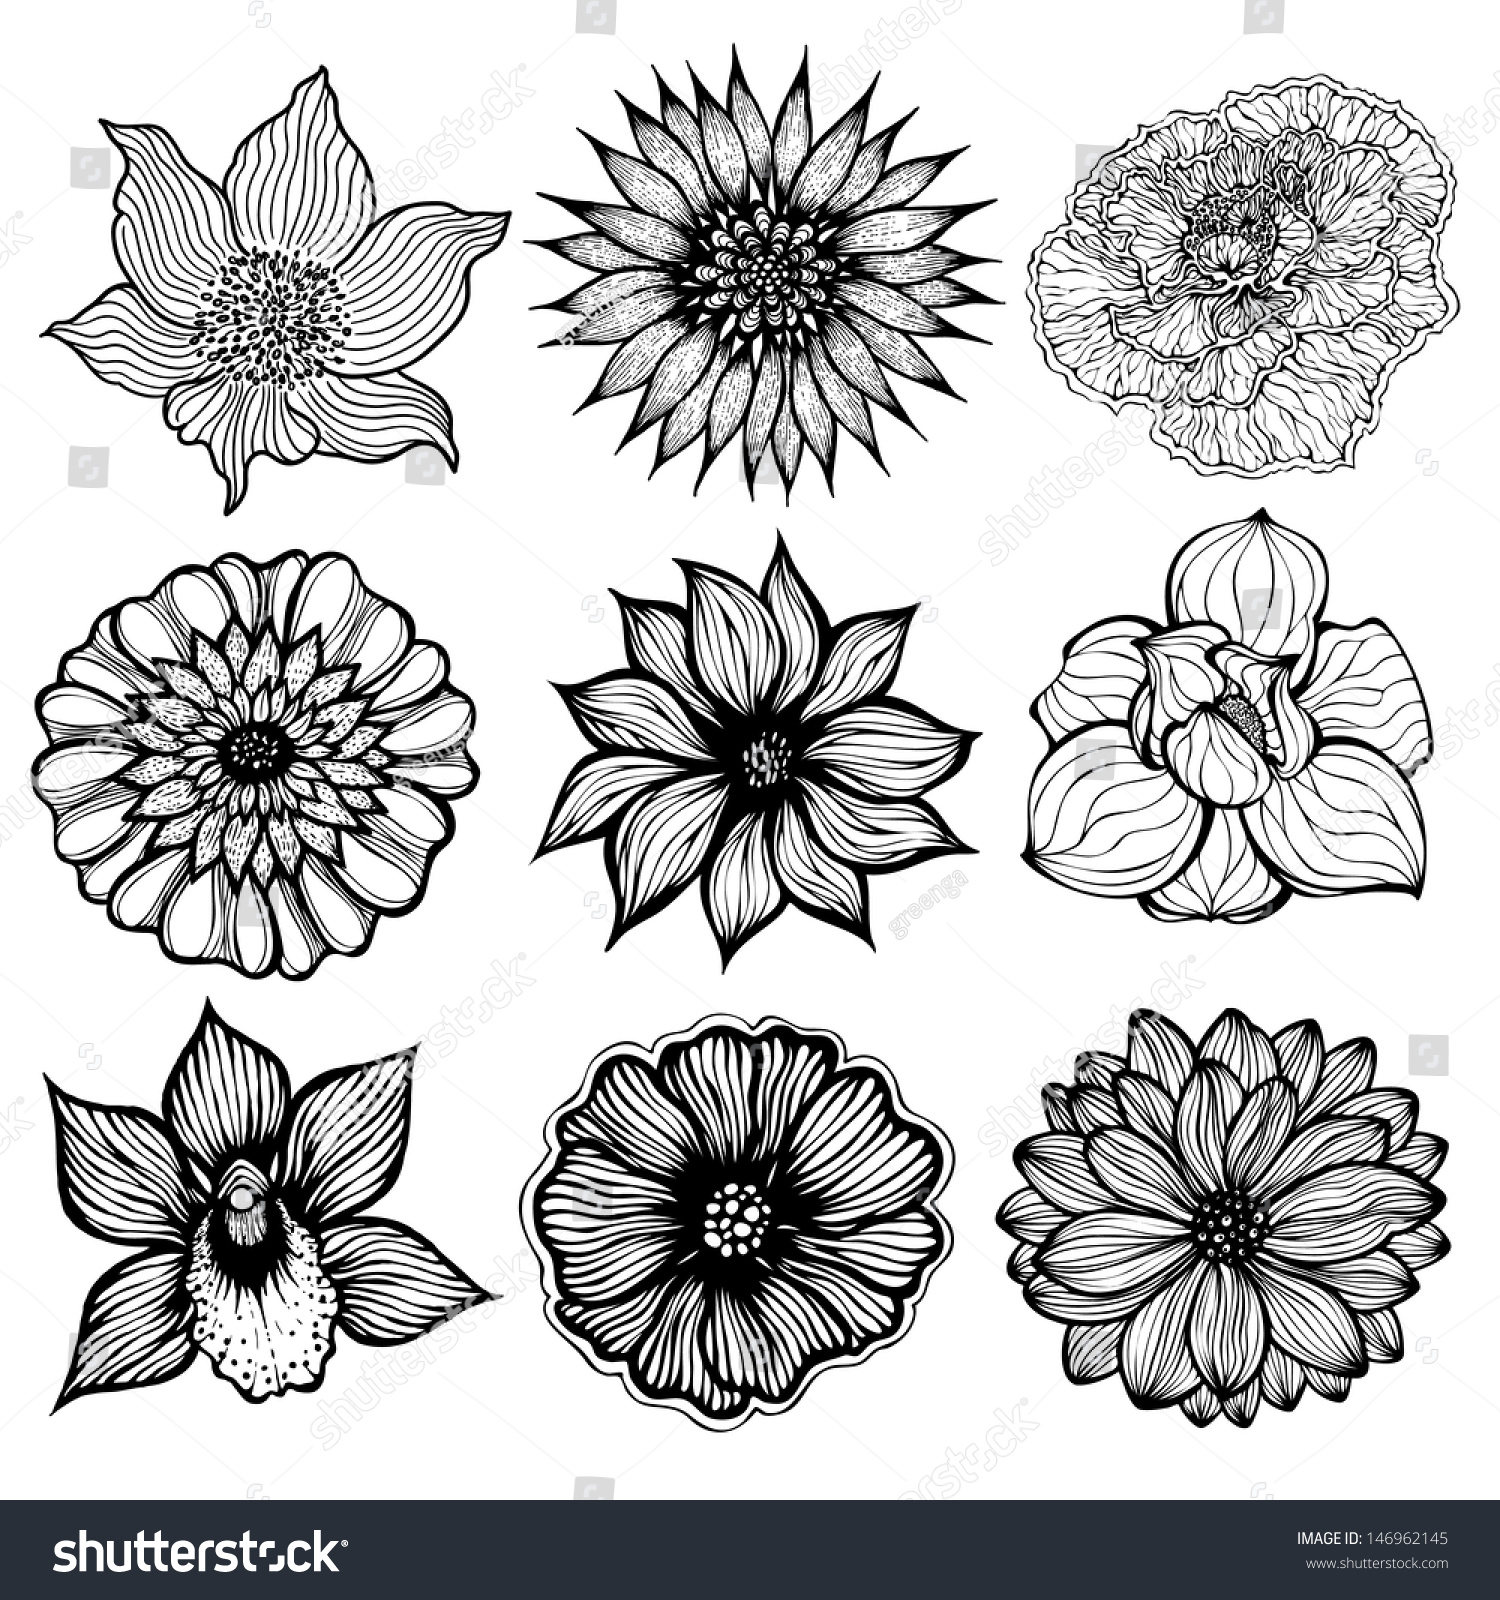 Set Of Black Flower Design Elements From My Big Floral: Set 9 Different Hand Drawn Flowers Stock Vector 146962145